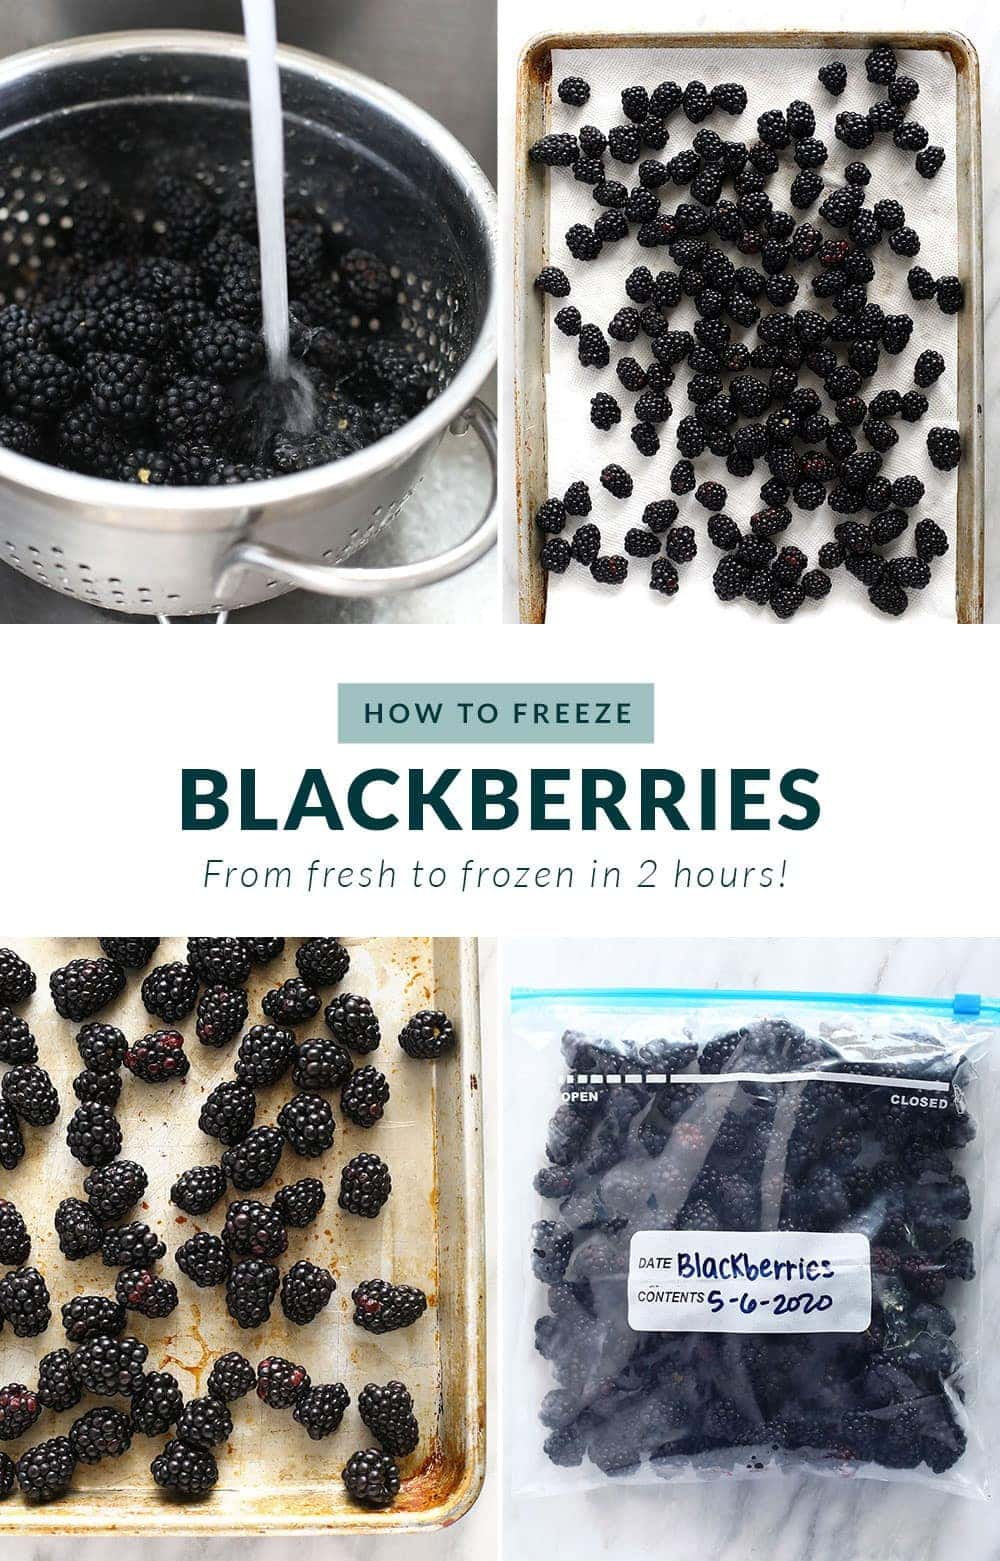 how to freeze blackberries step by step